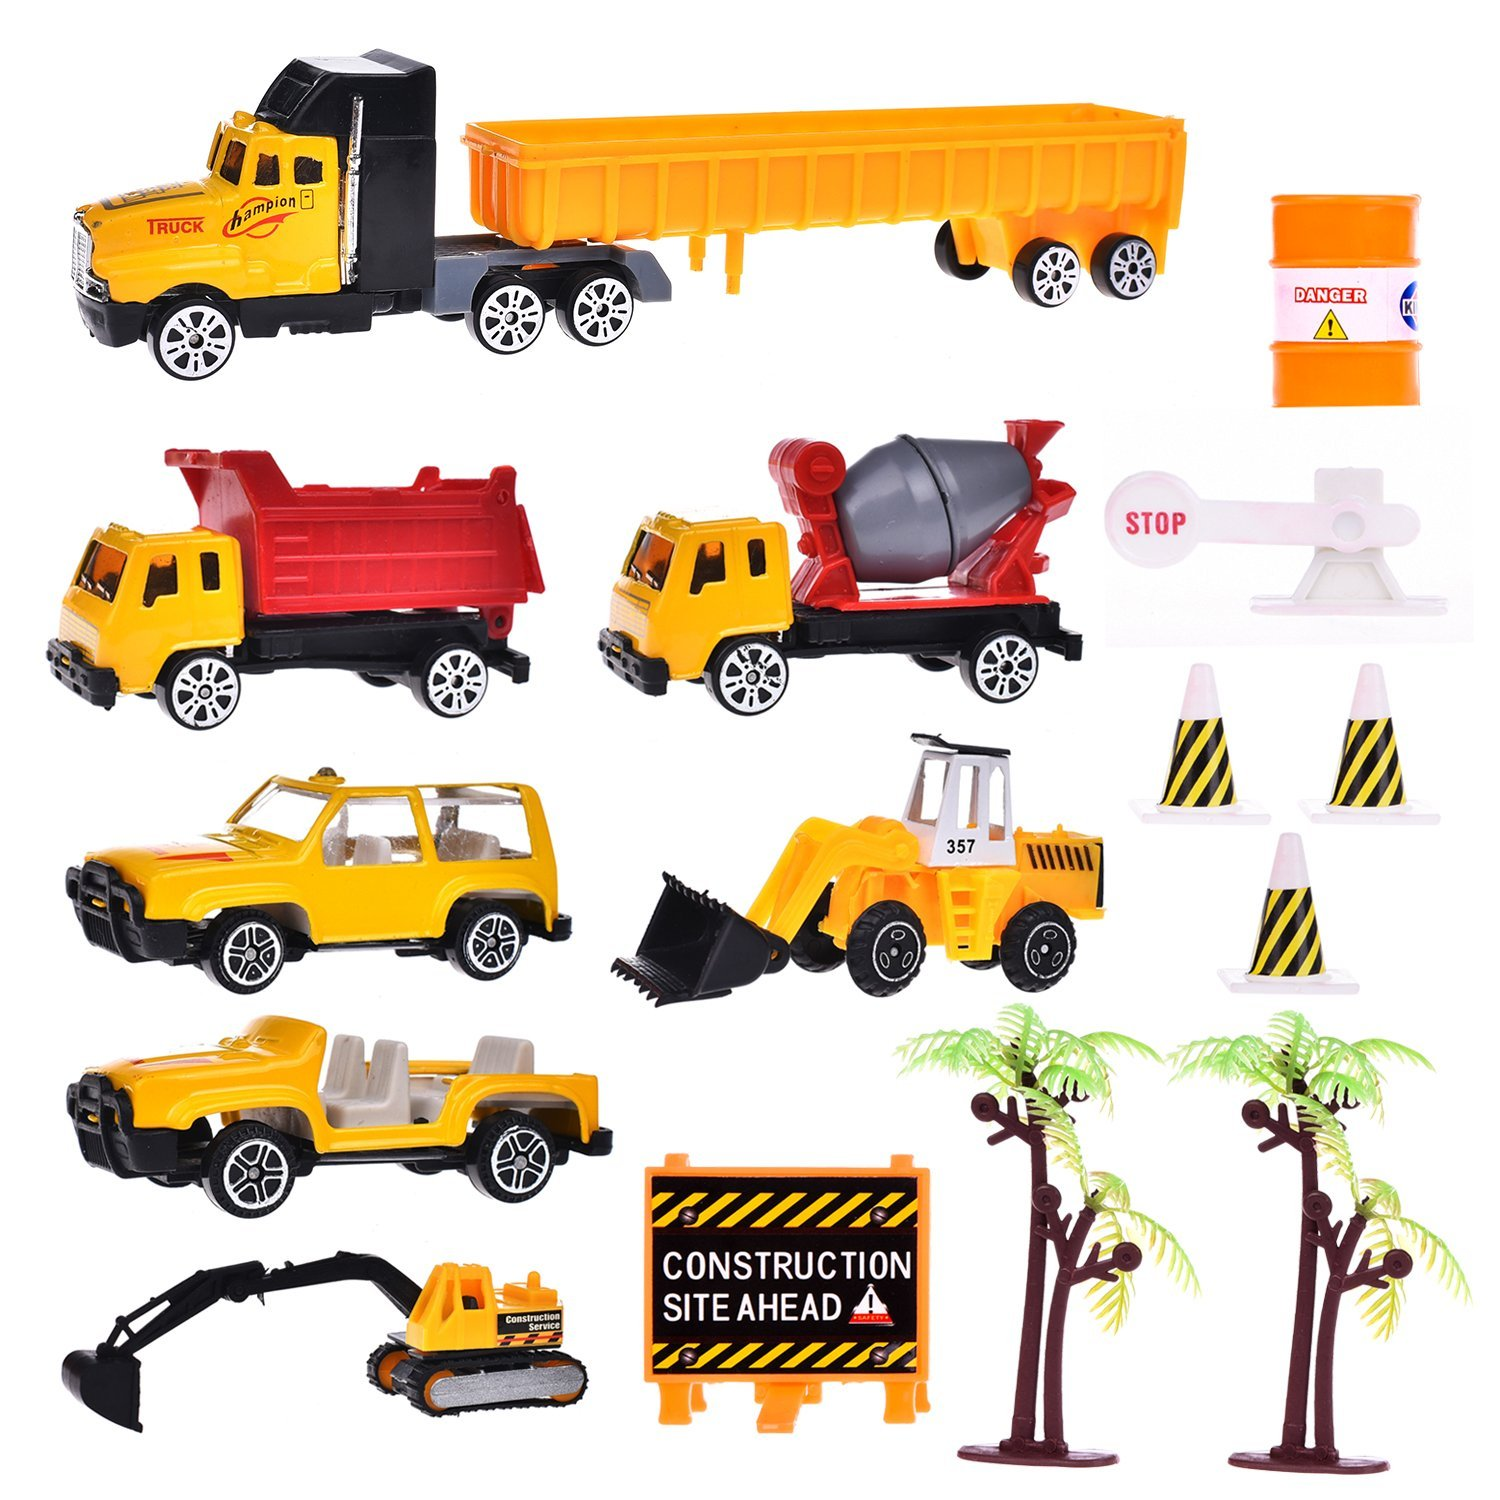 Construction Cars Play Set Vehicles Trucks Playsets for Boys Tough Construction Toy Set for Kids with Diggers, Mixing Truck, Construction Truck, Helicopter, Tow Truck, Semi Truck and Accessories 16pcs